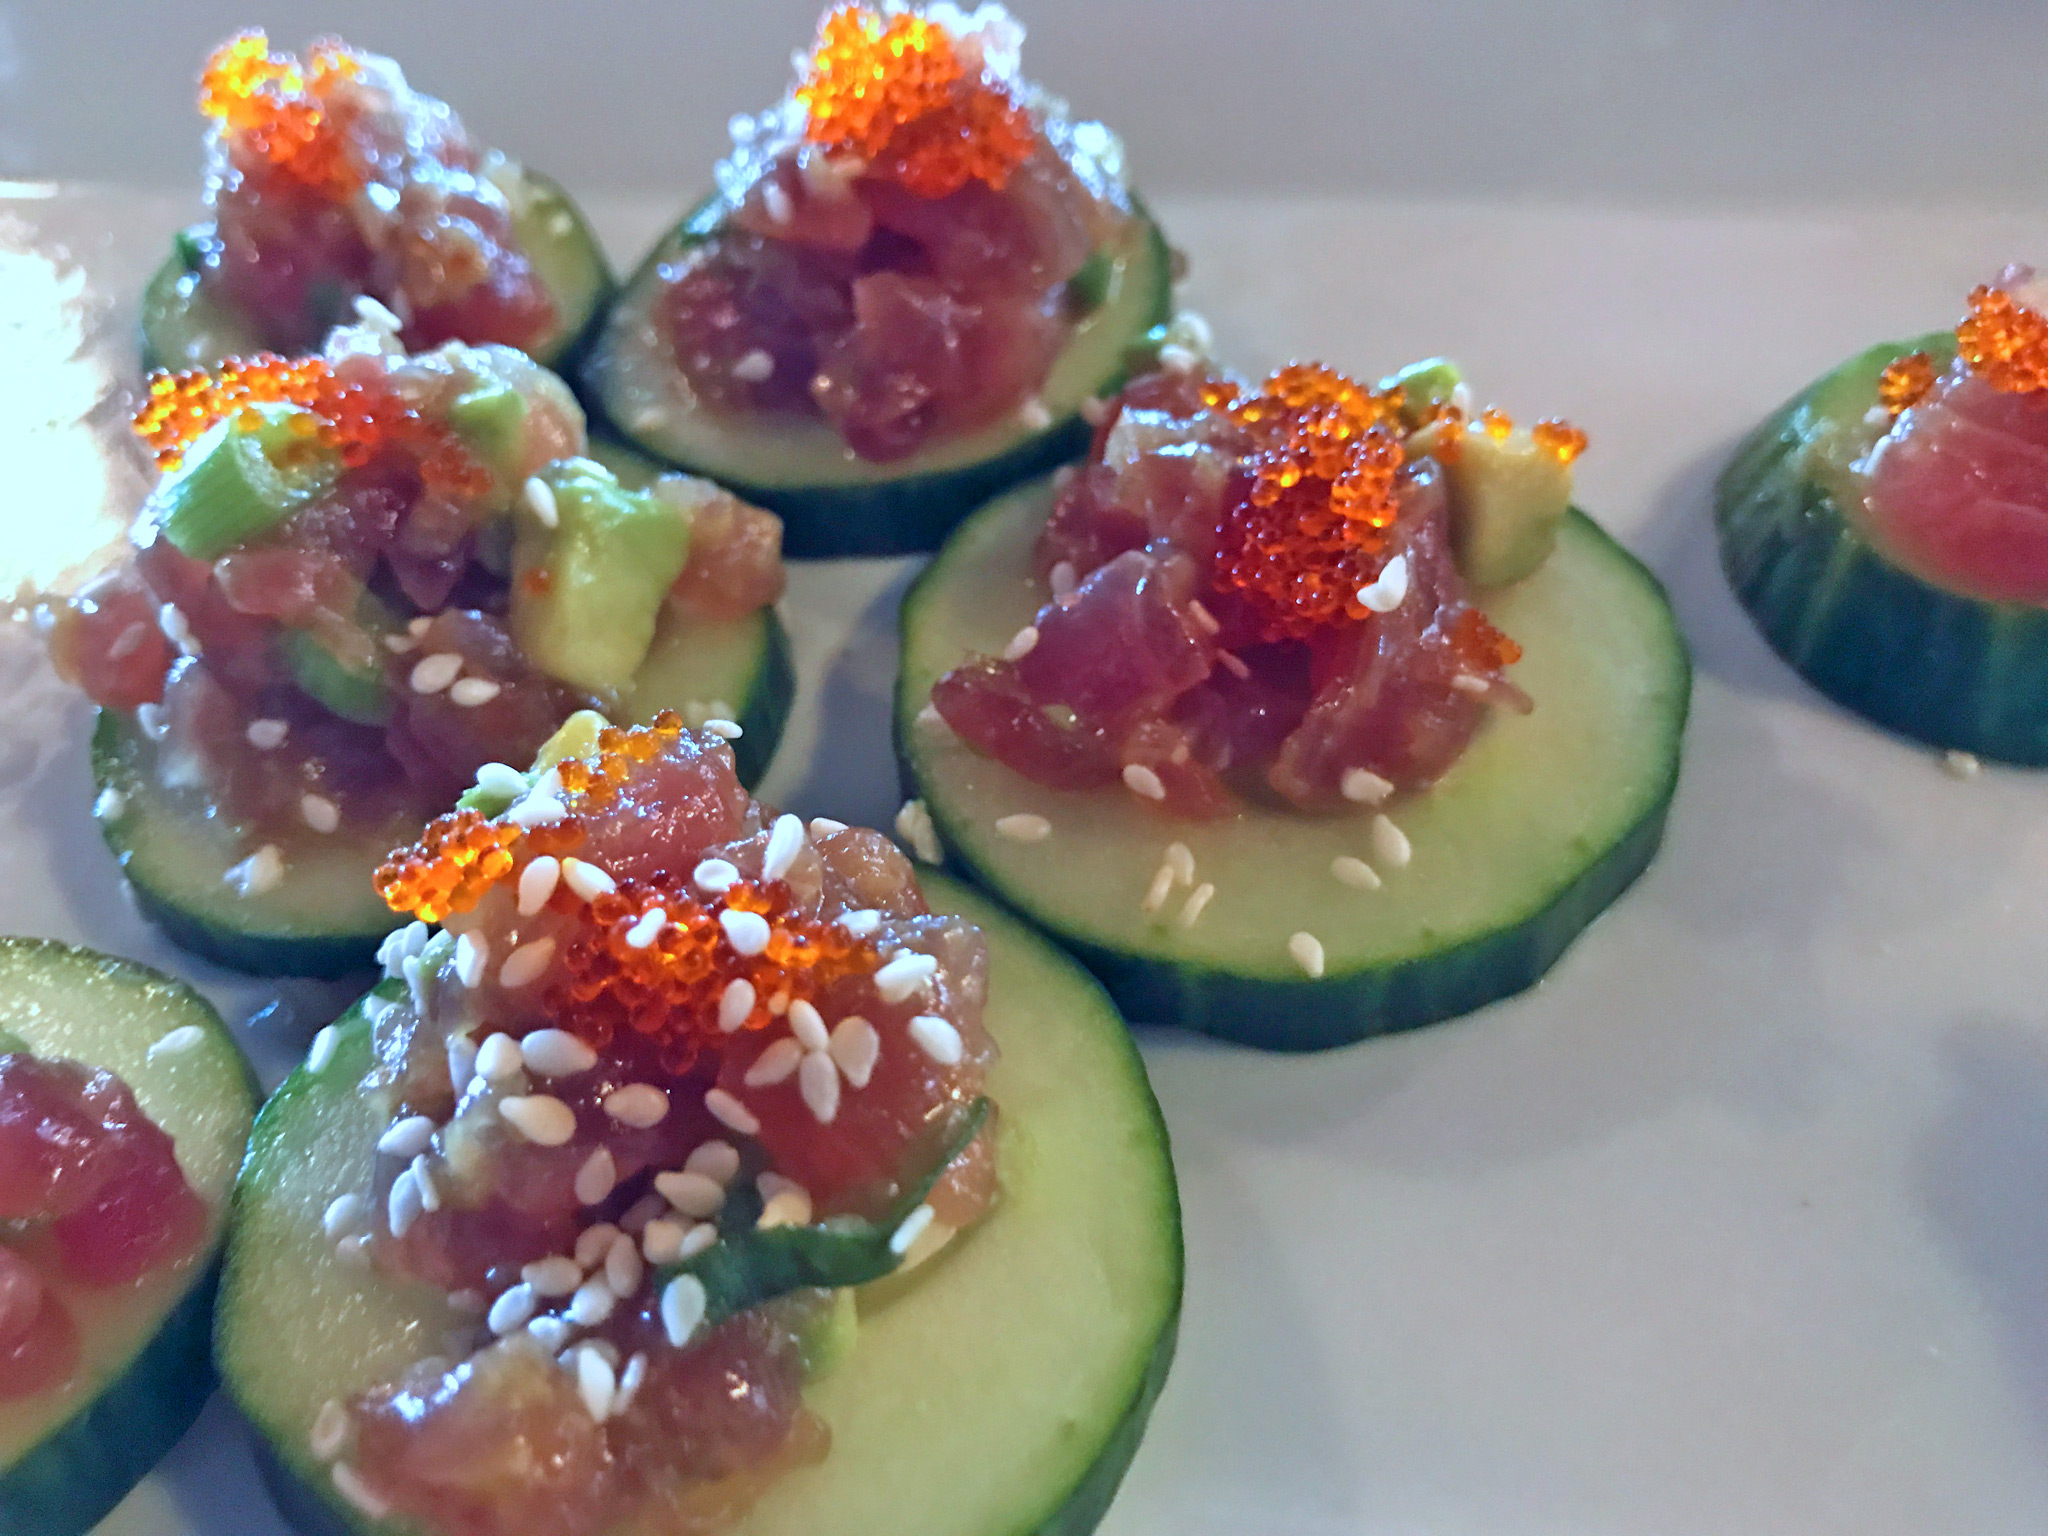 Ahi Tuna Poke // Sushi grade tuna tossed with avocado, sesame, soy, lime and sea salt. Served with tobiko, wontons and cucumber.